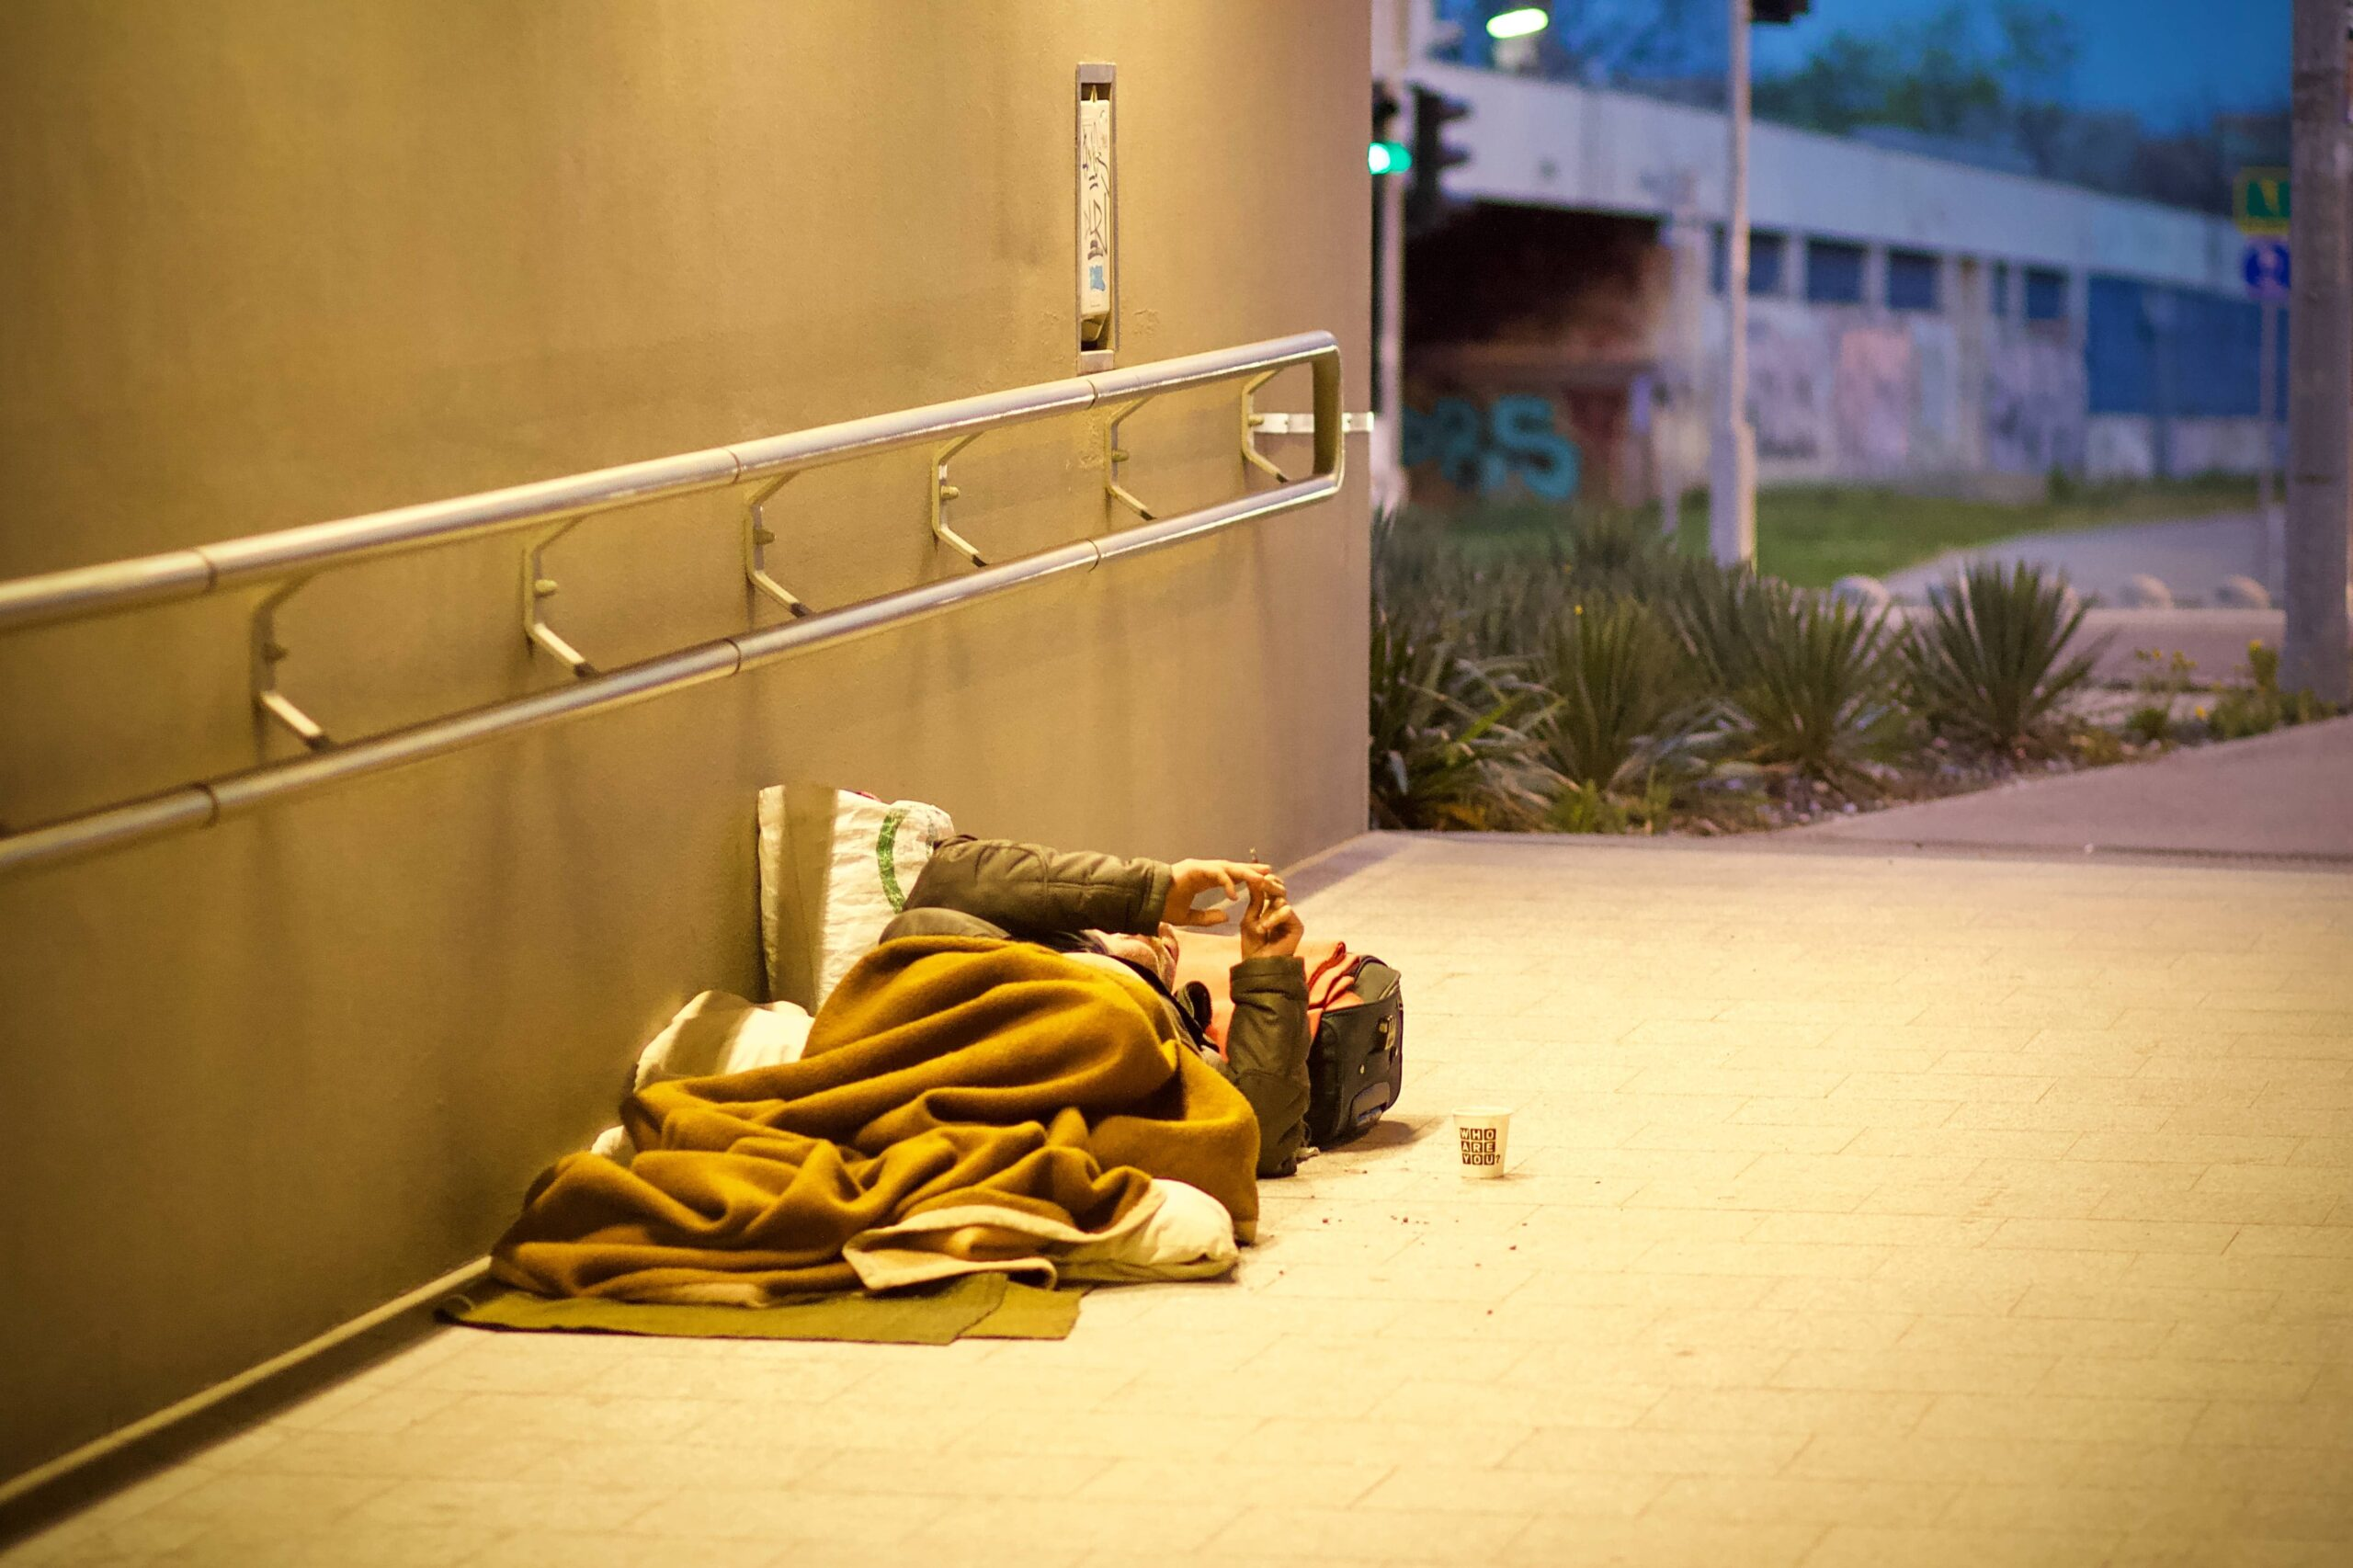 Homelessness services in 2020: what's the story (Part Two)? Accommodation